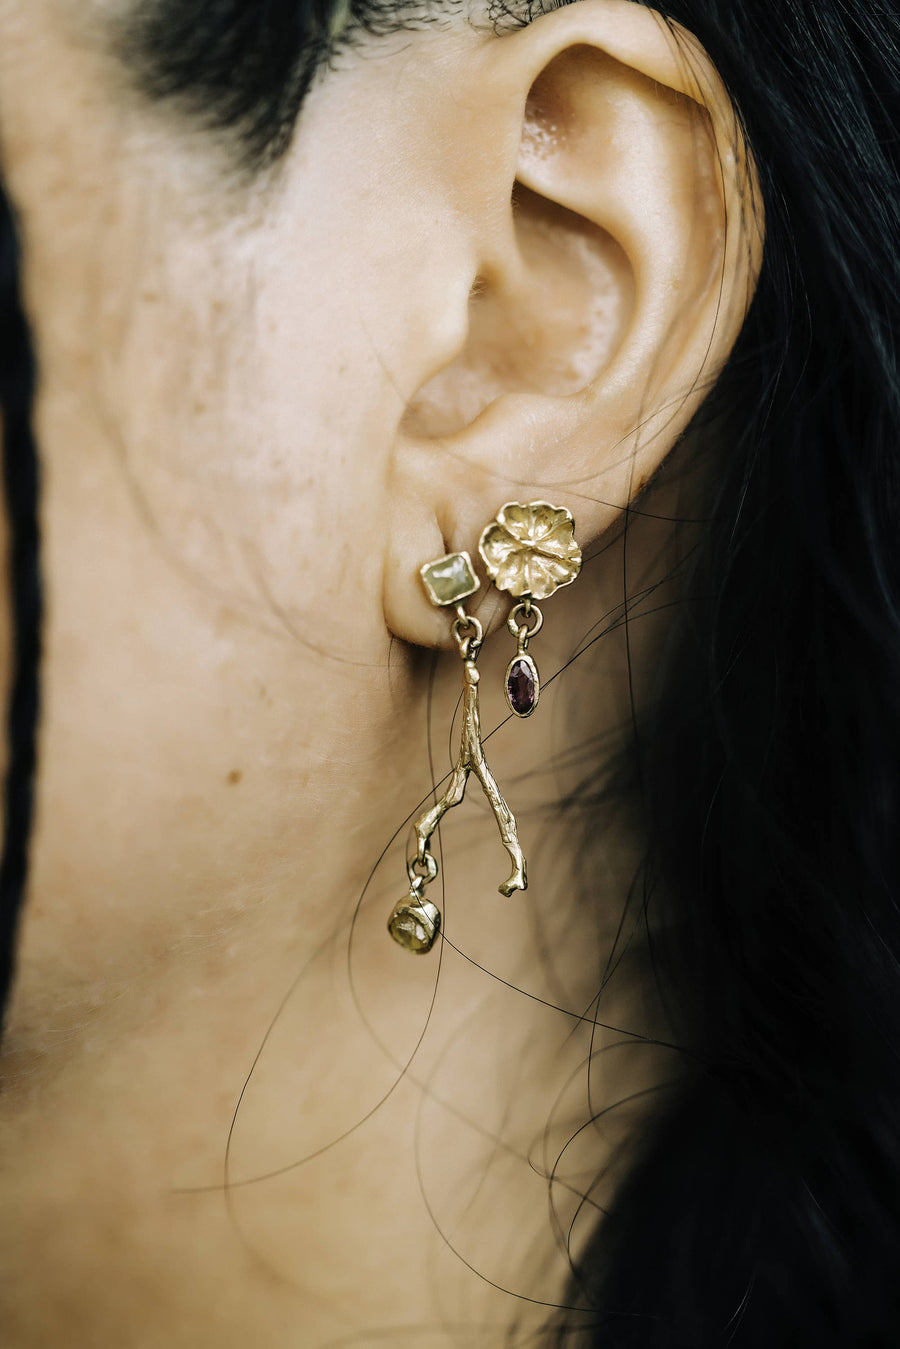 Surreal Sprig Earrings